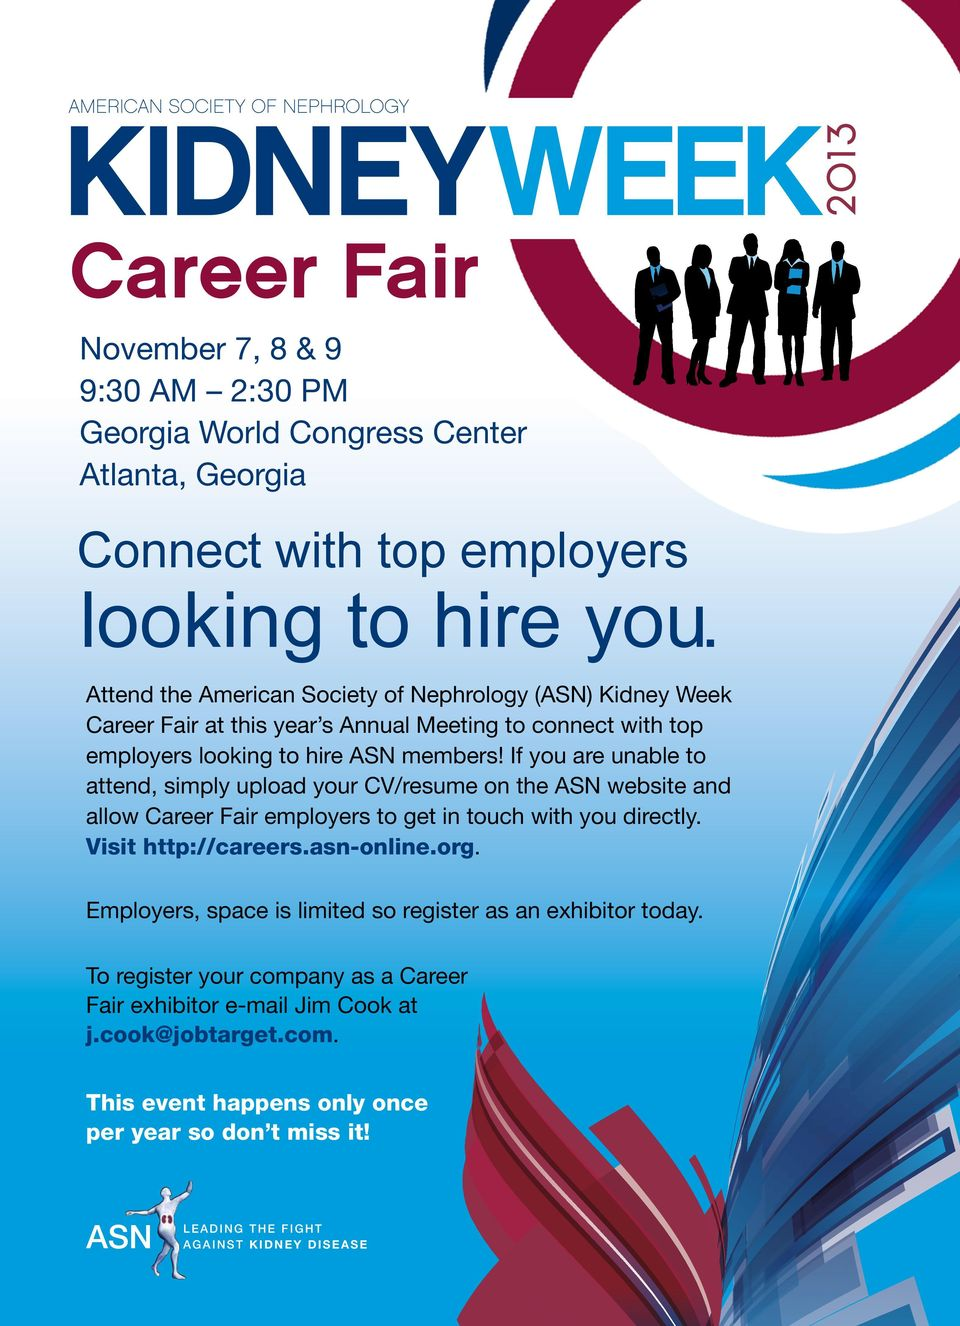 If you are unable to attend, simply upload your CV/resume on the ASN website and allow Career Fair employers to get in touch with you directly. Visit http://careers.asn-online.org.